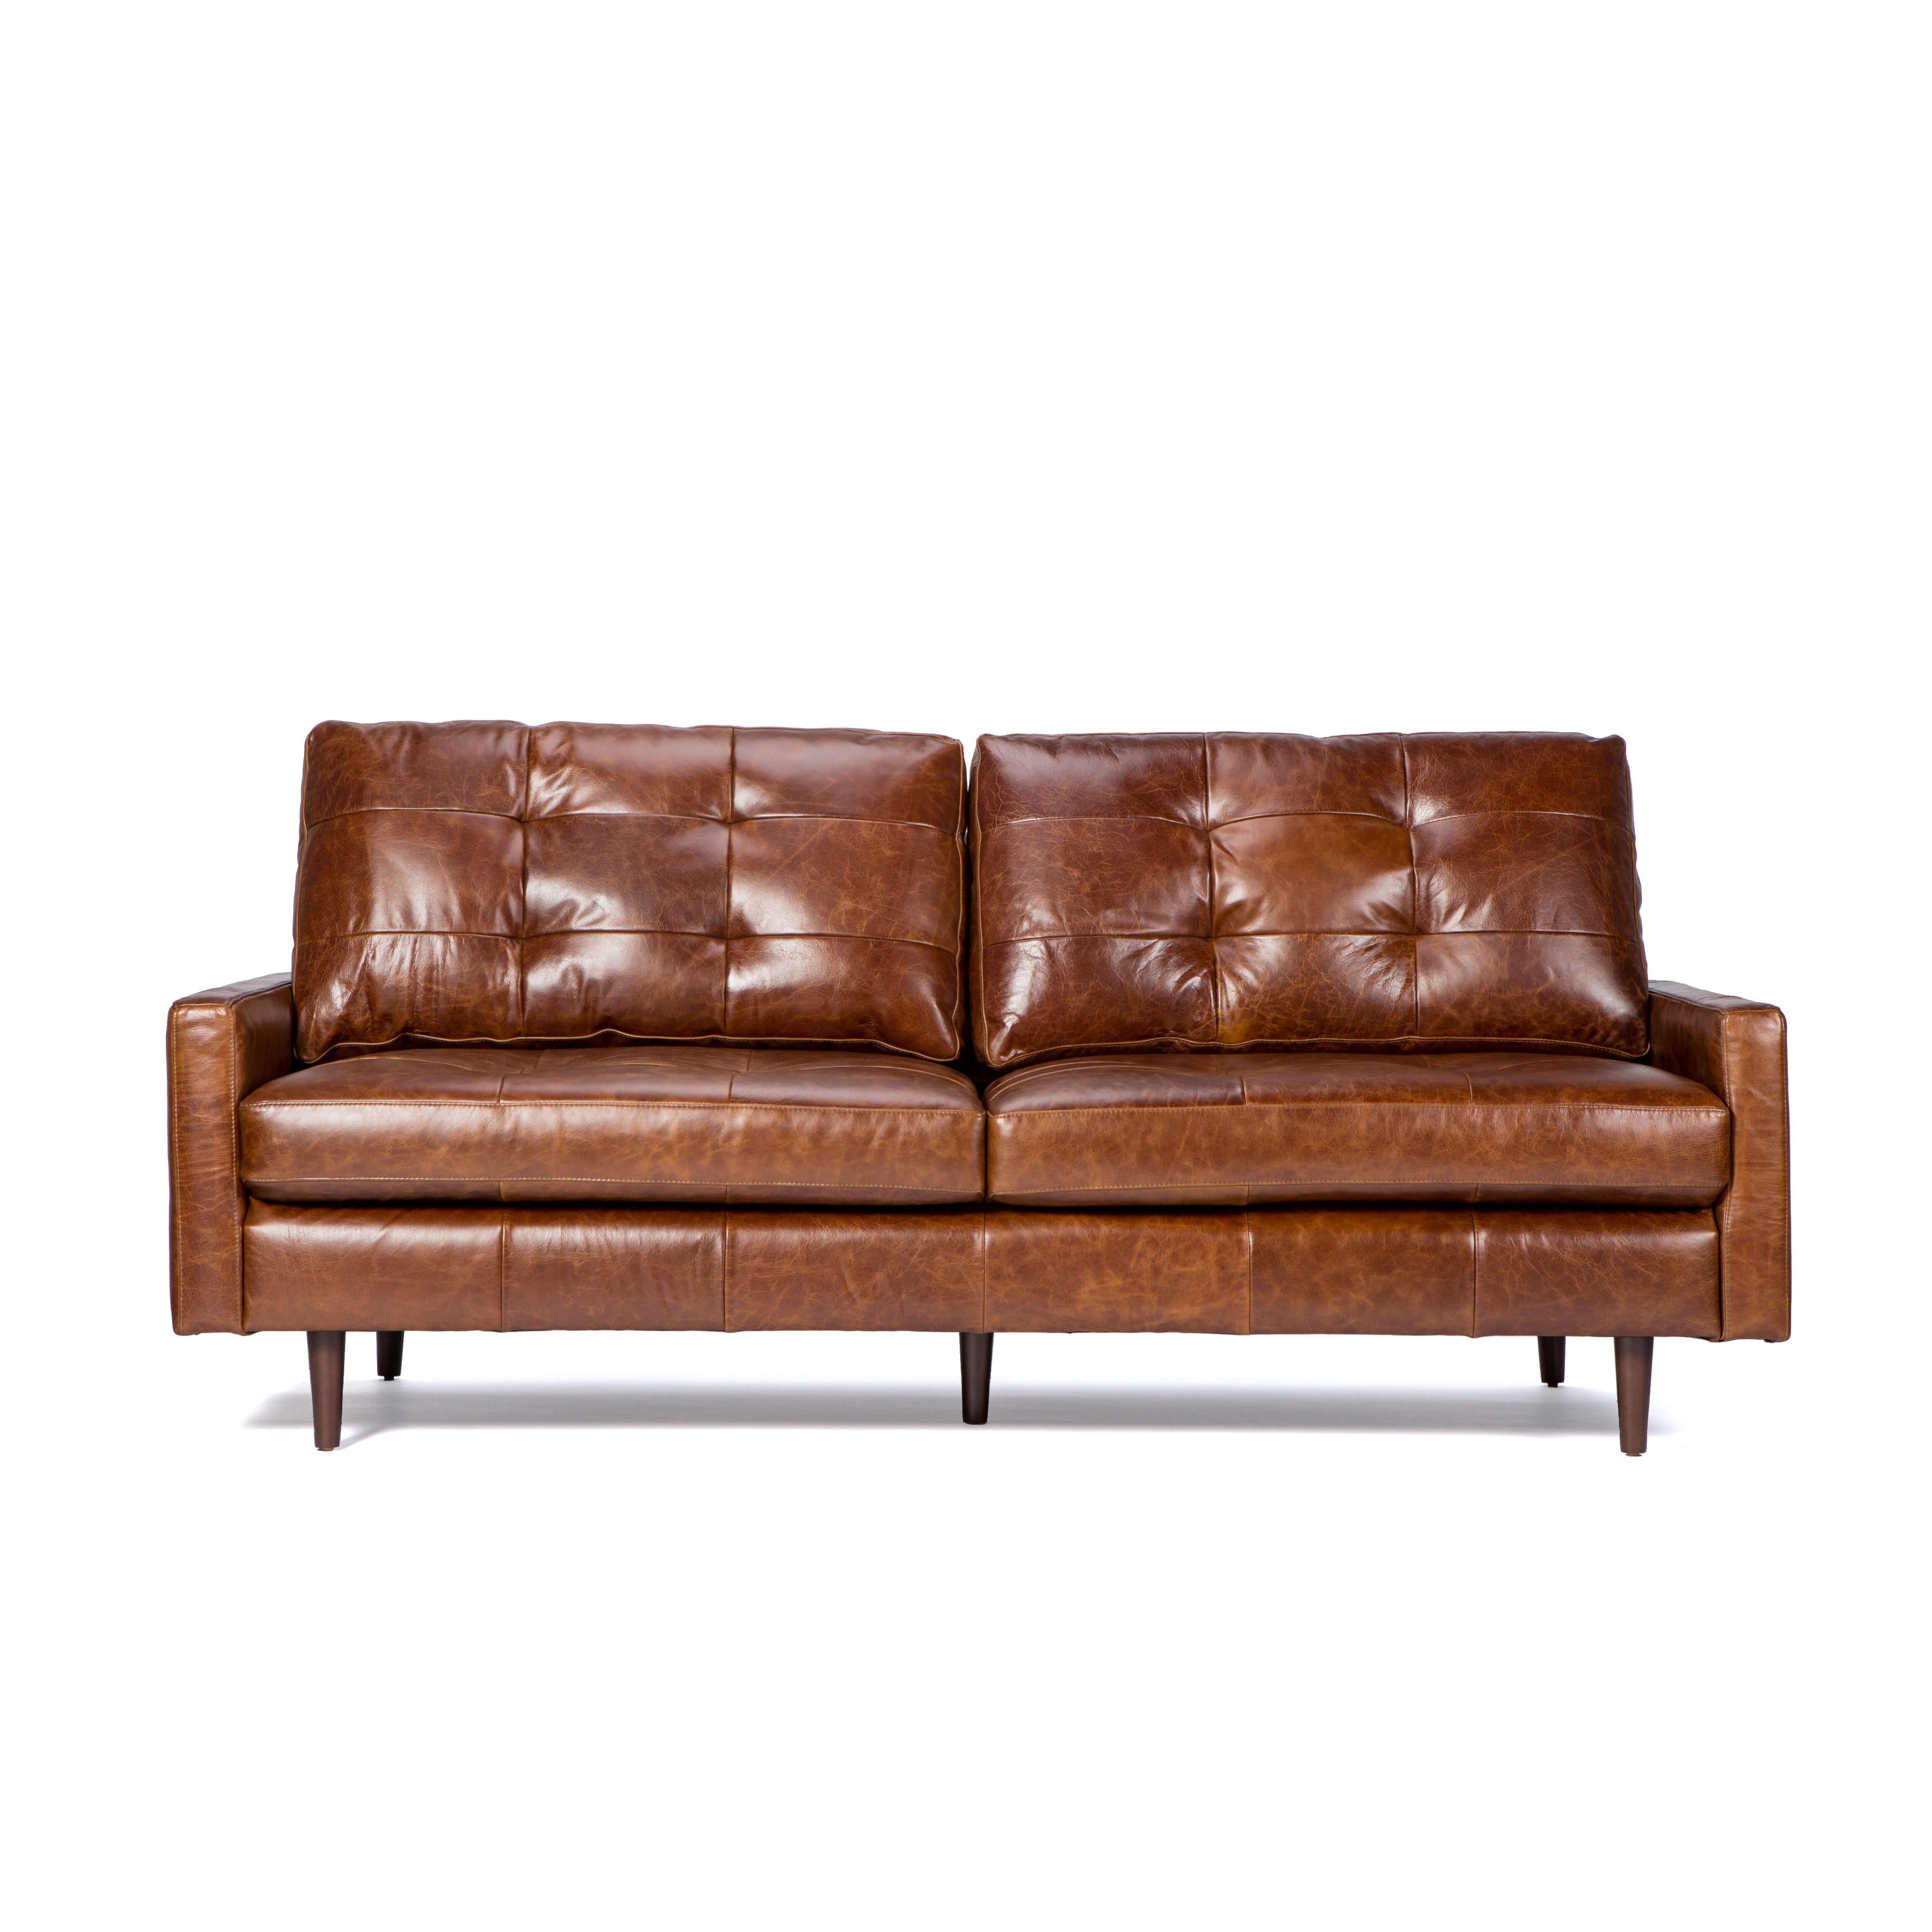 Andrew Leather Sofa Chairs Regarding 2019 Leather Sofa With Tufted Back Cushion – Andrew – Zillo + Hutch (Gallery 4 of 20)